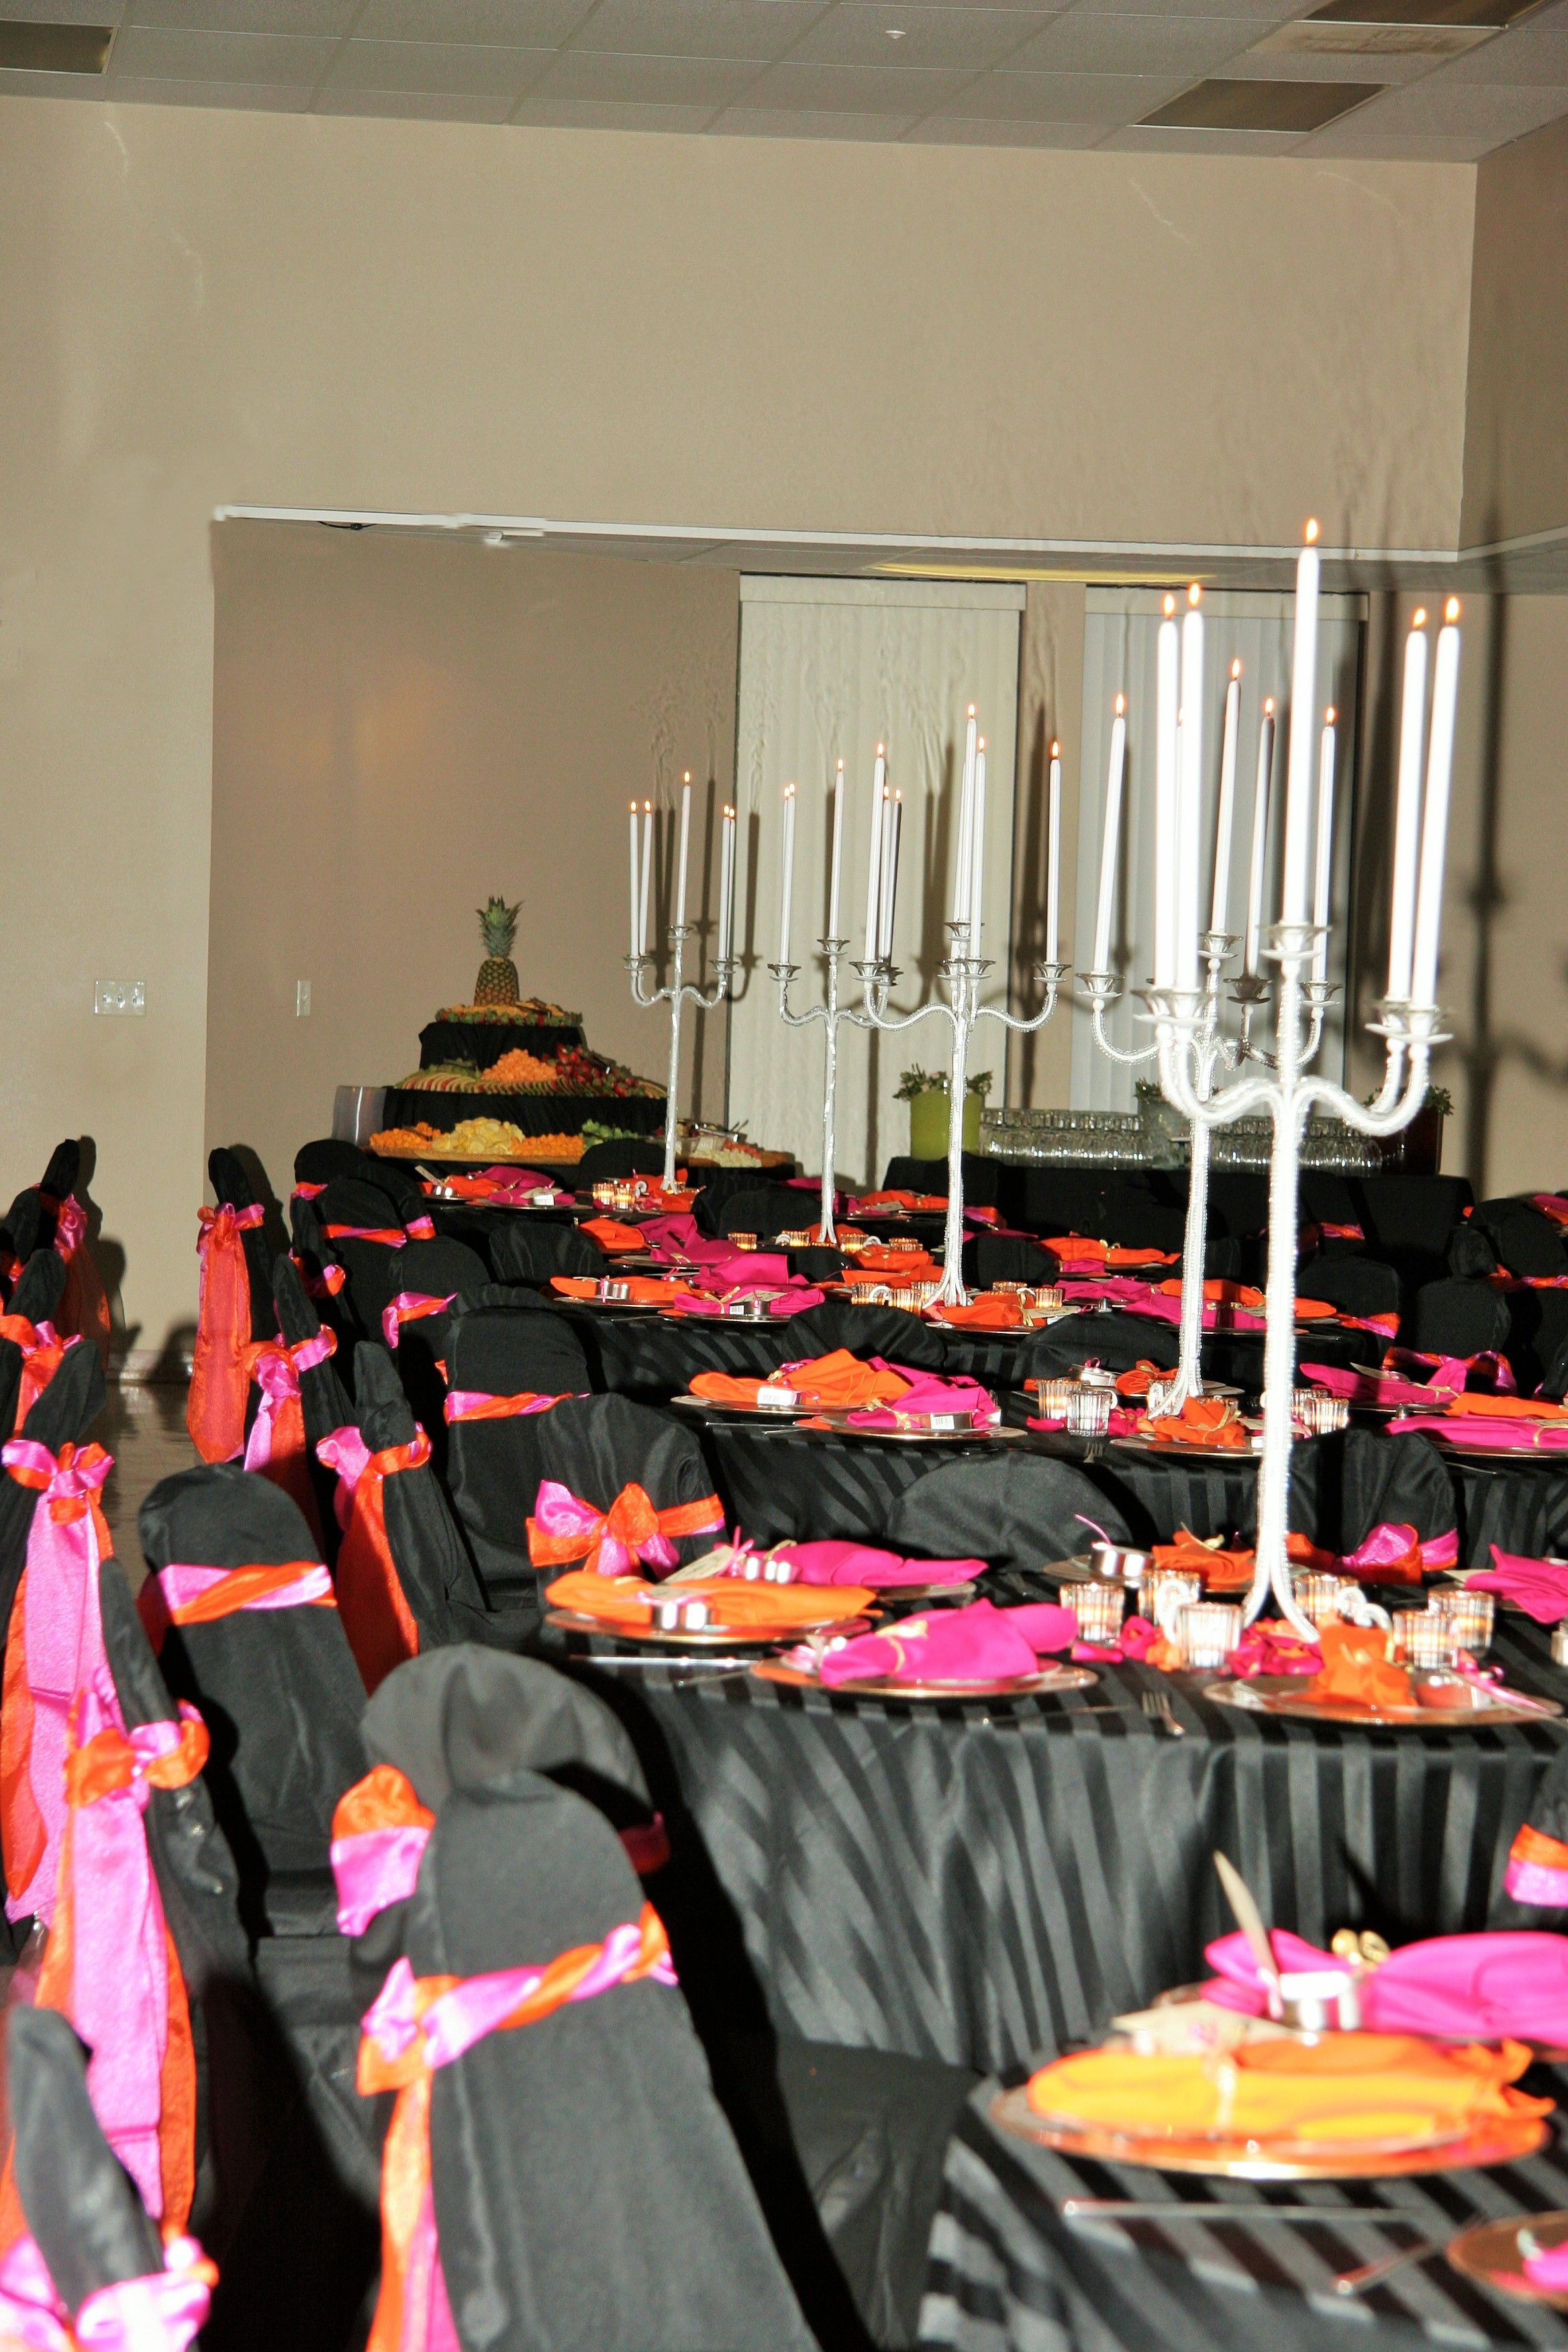 Wedding Decor Black Linen With Orange And Pink, Tall Candle